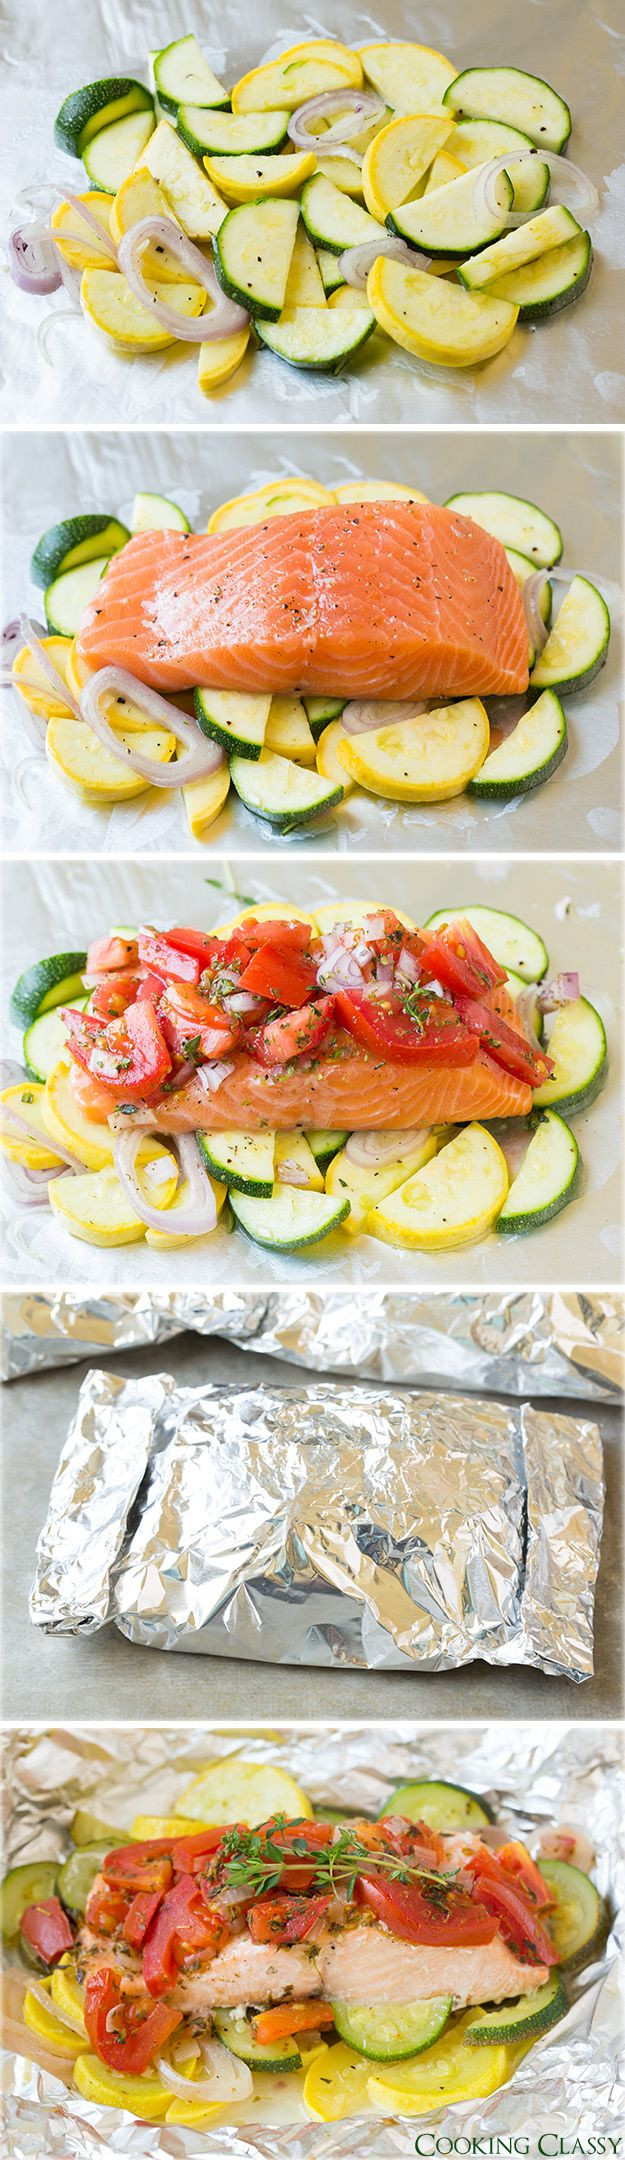 Salmon & Summer Veggie Foil Packet